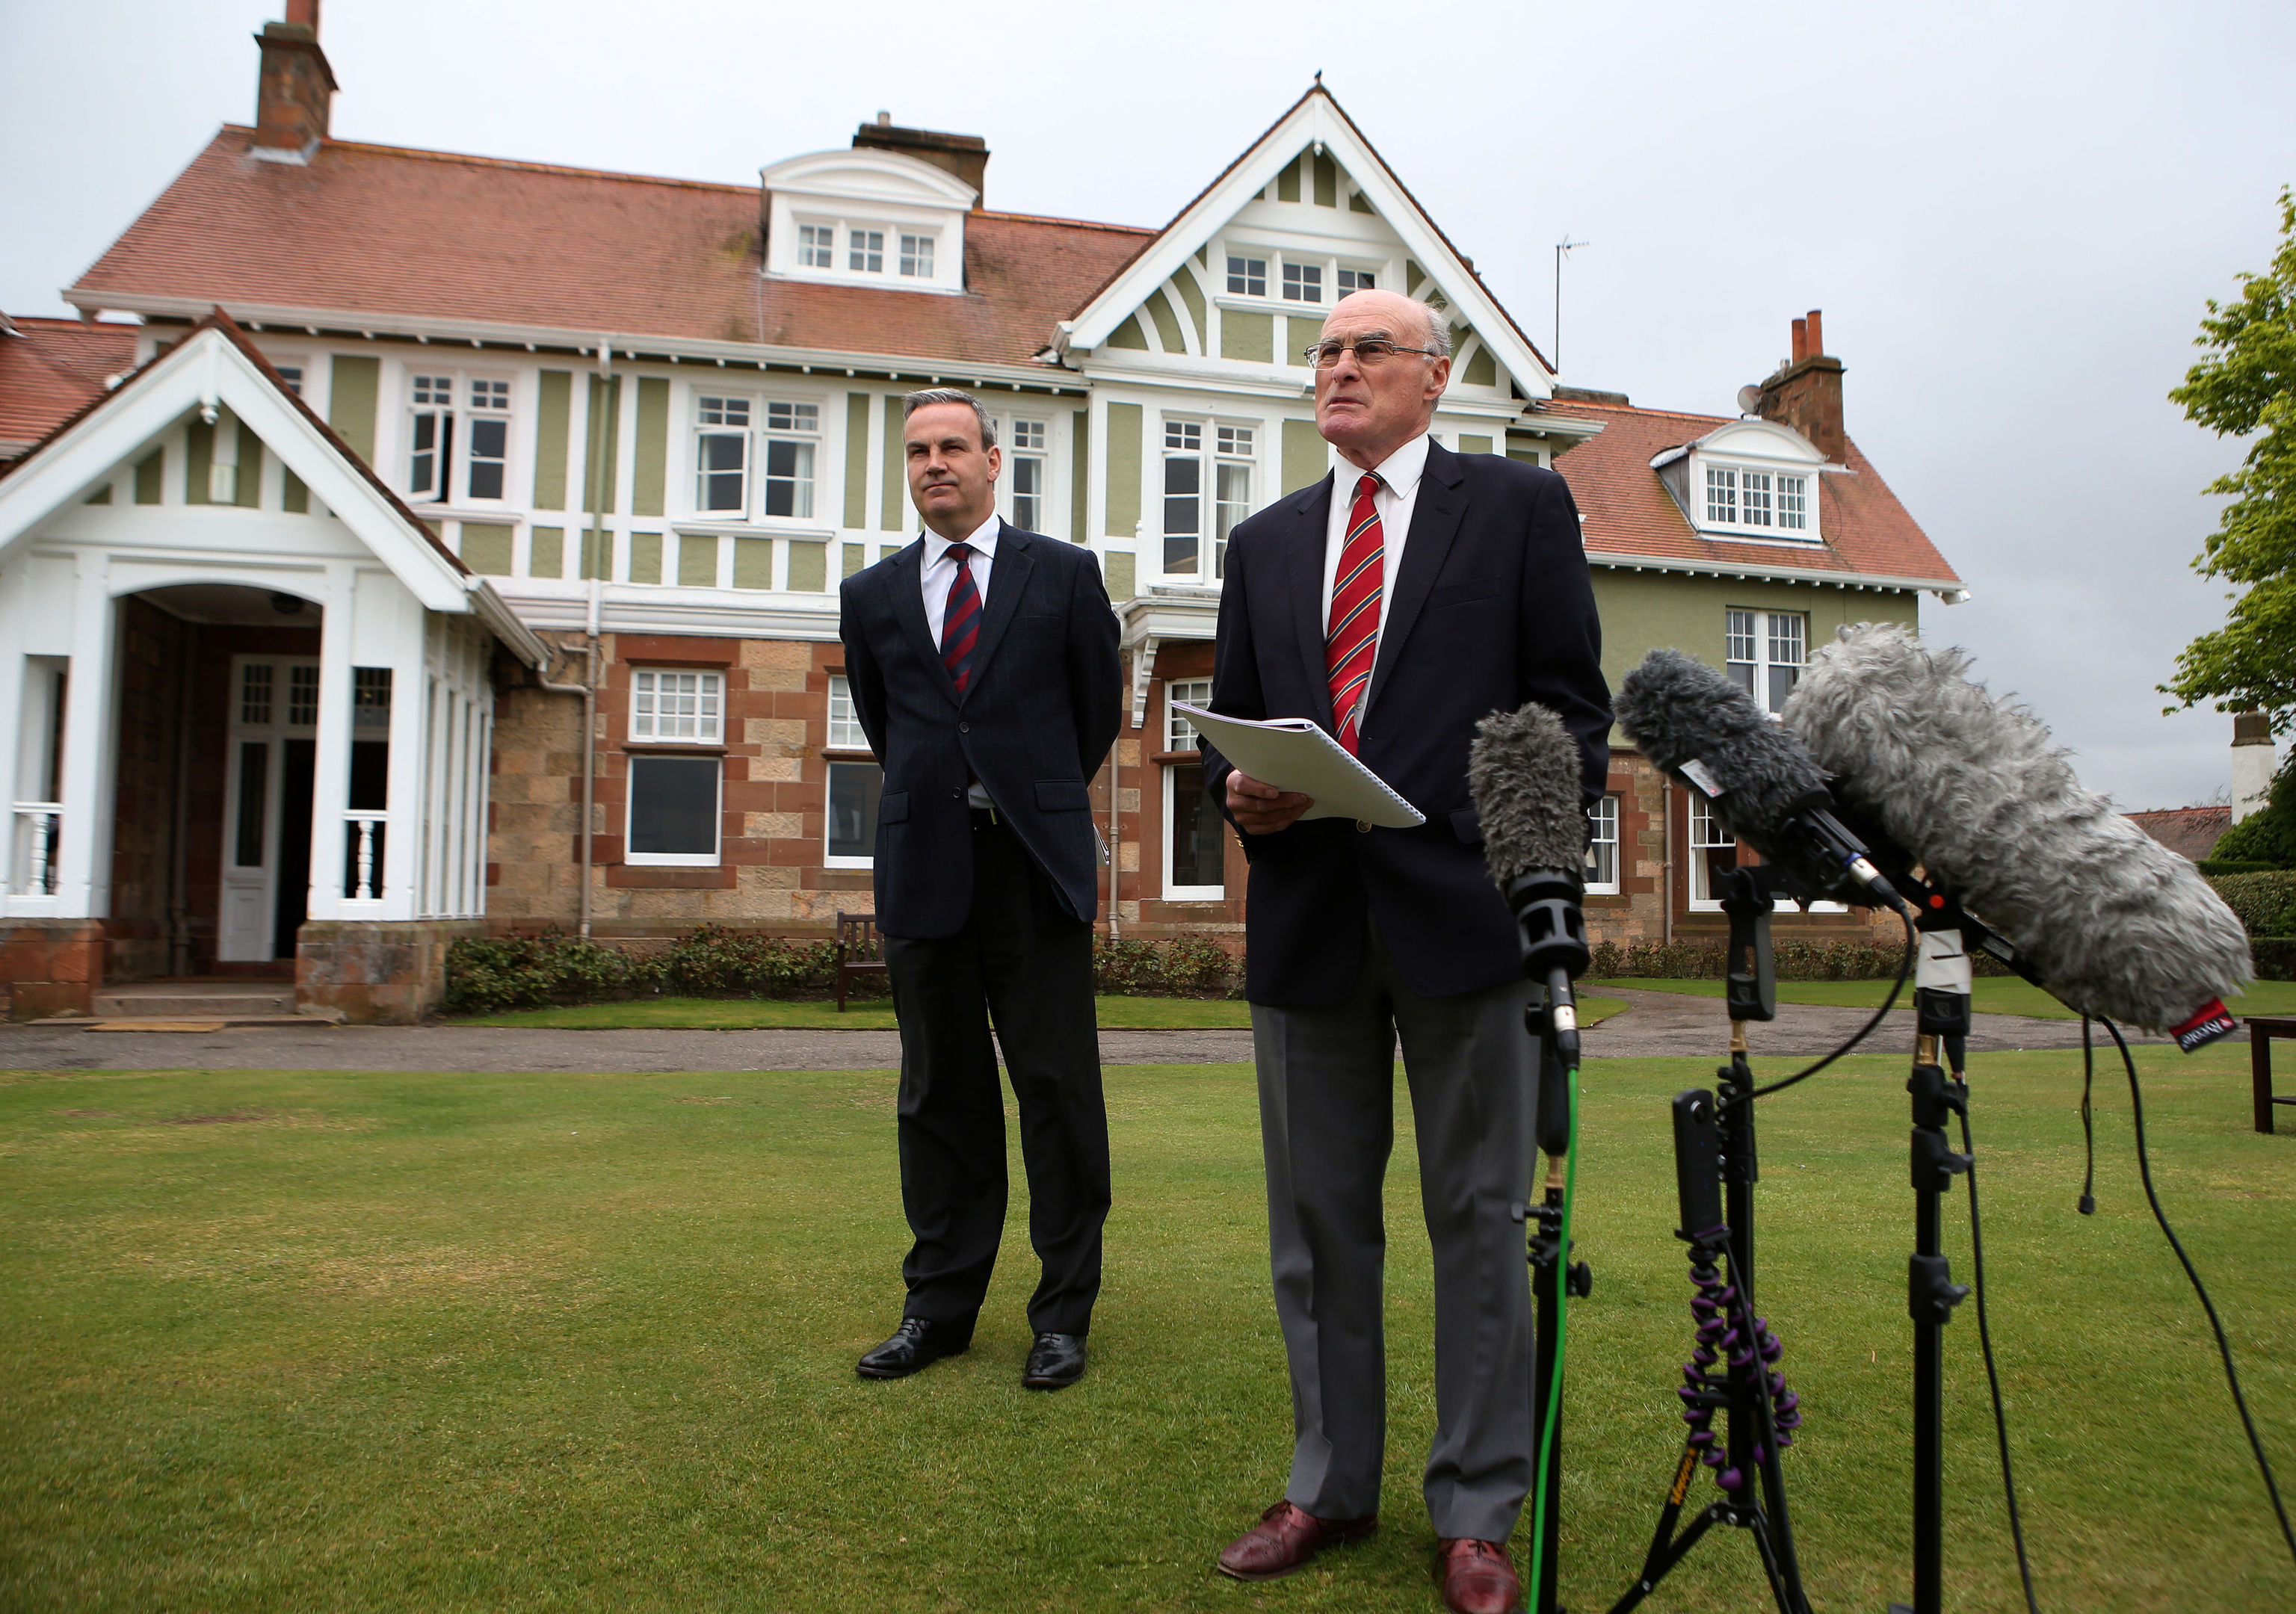 The R&A has removed the club from The Open rota after it voted against admitting women to join the club.